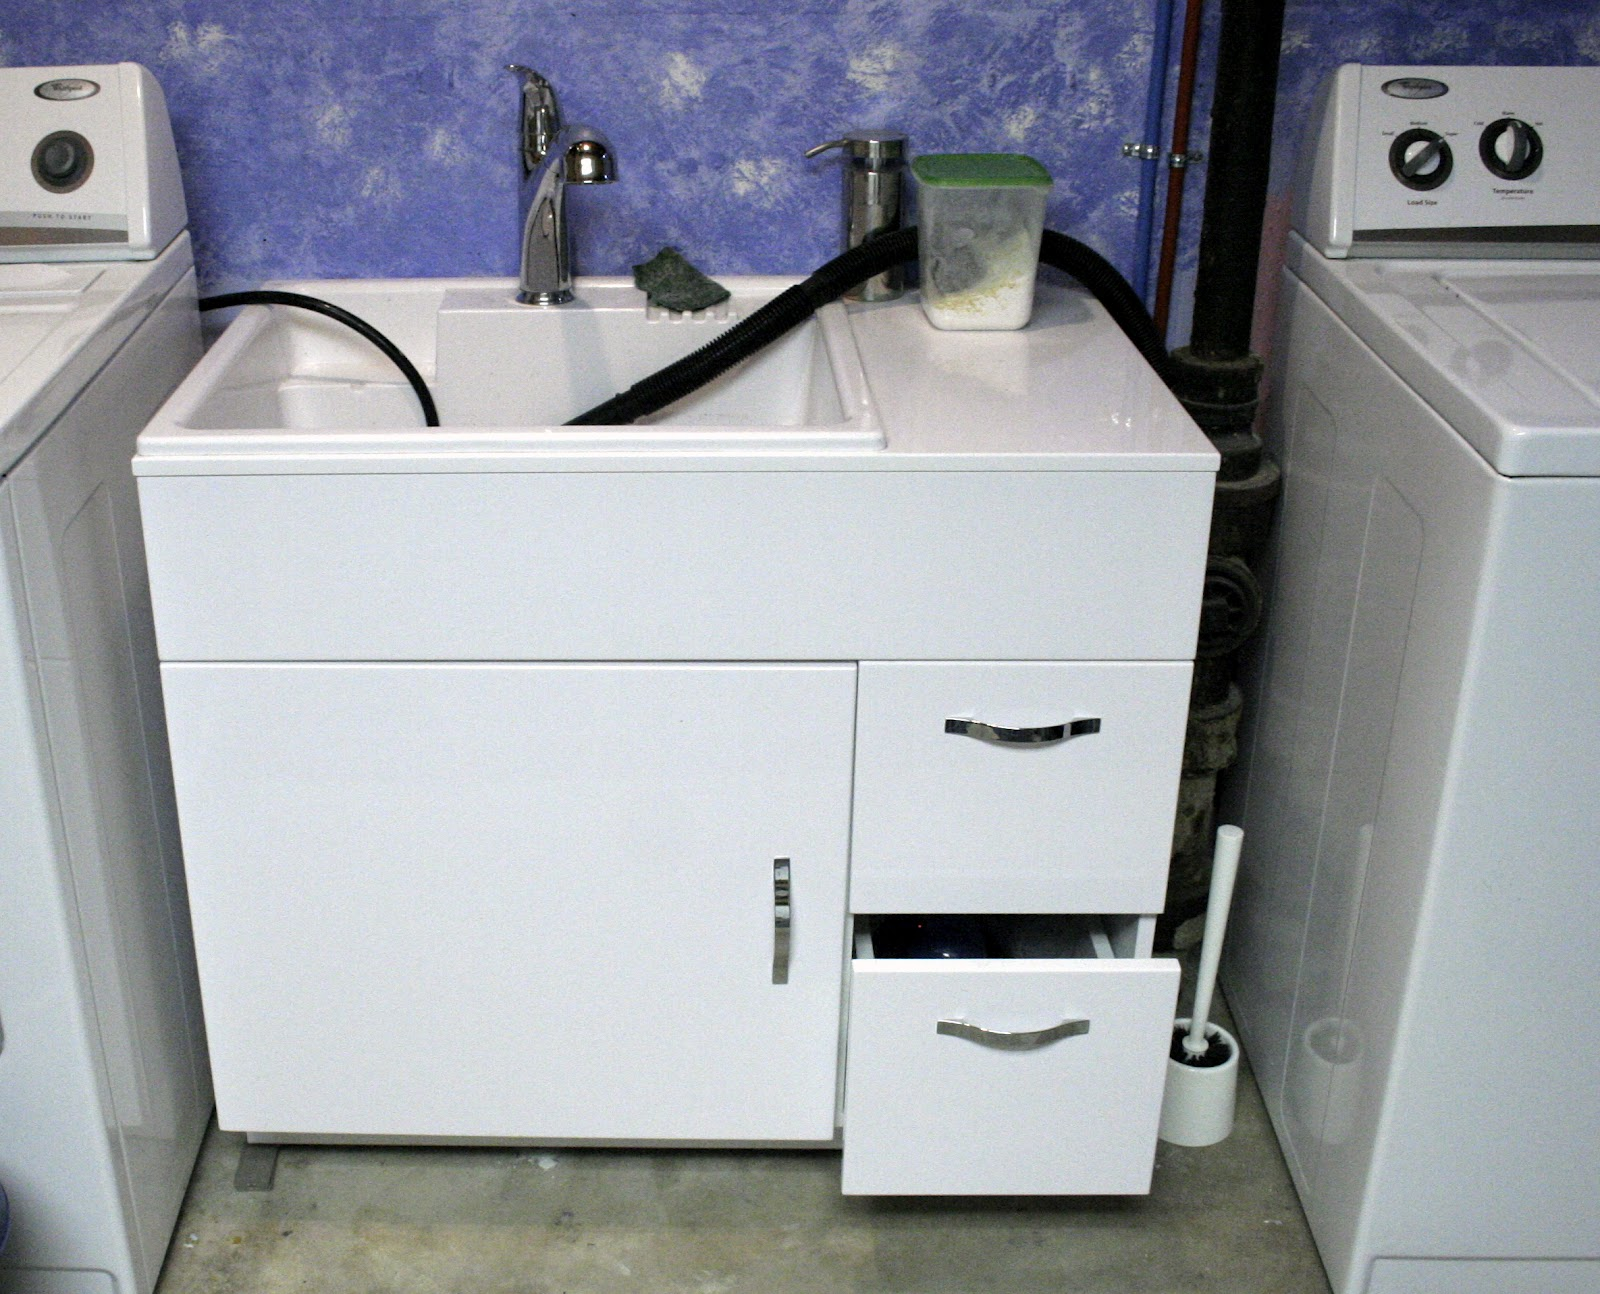 Laundry Wash Tub : three fates and j grow up laundry room take 2 laundry room take 2